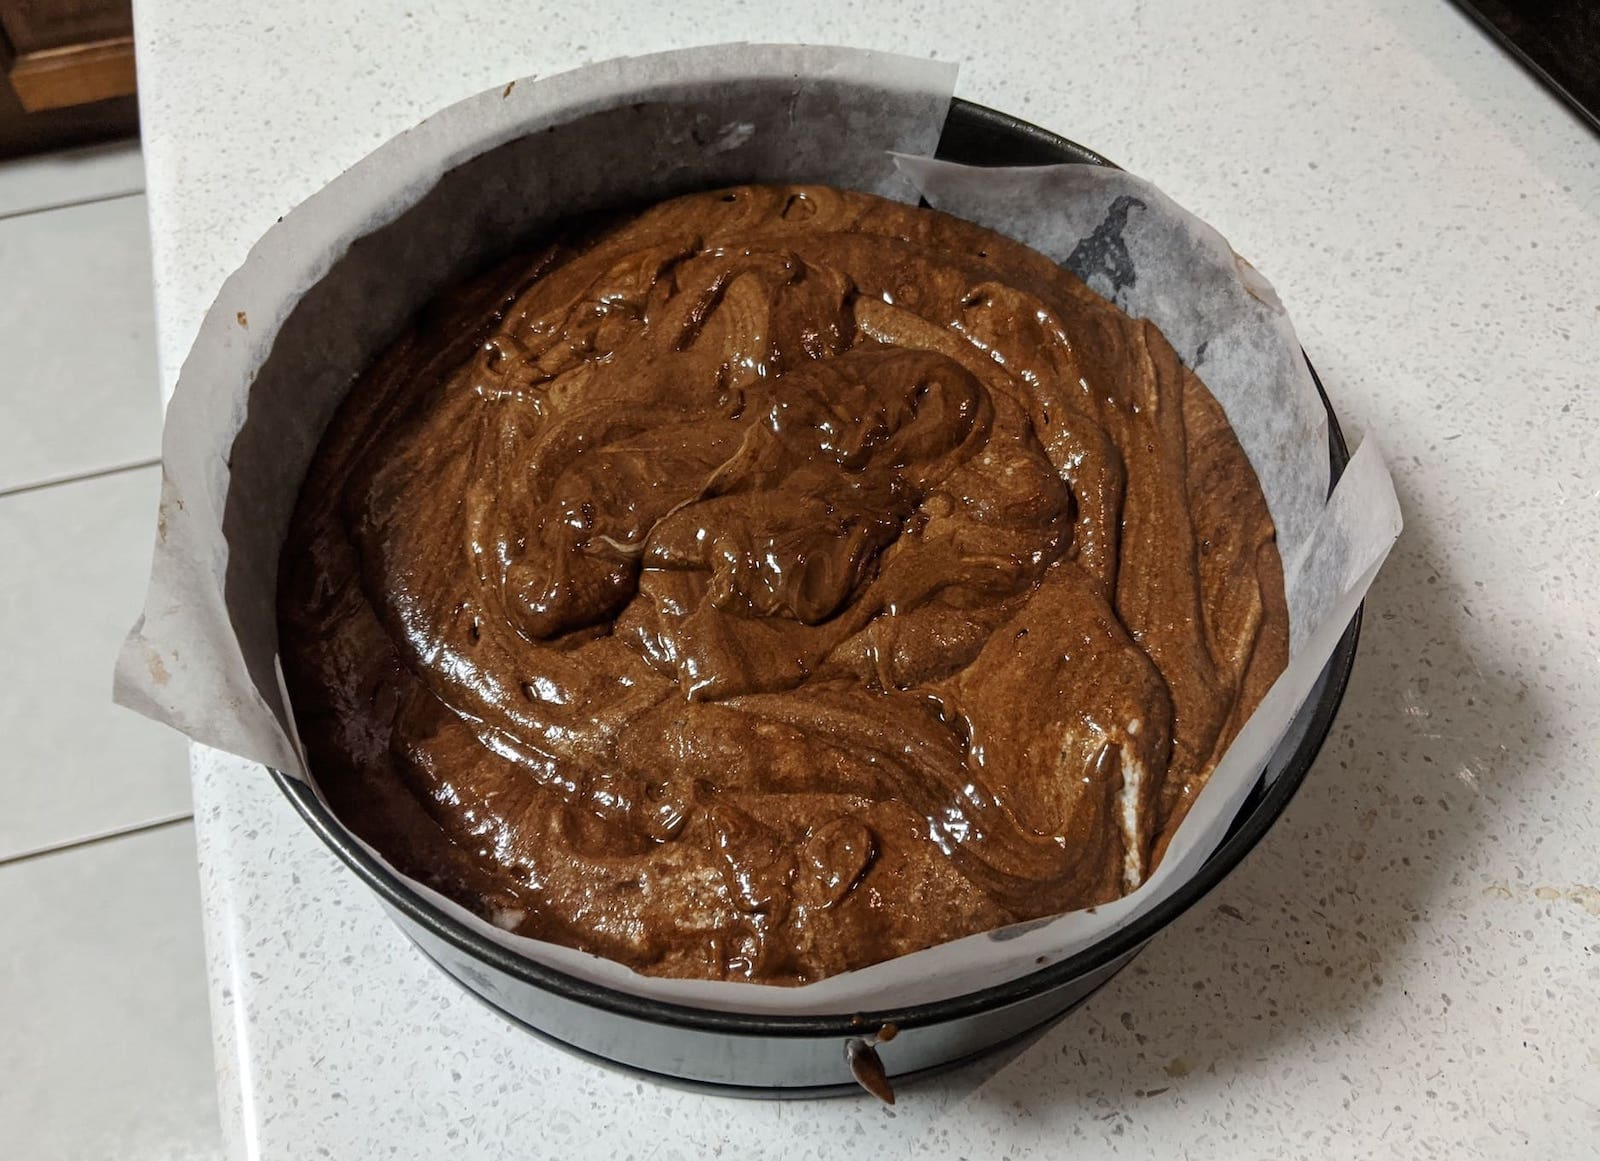 chocolate mousse poured into a tin, ready to become cake